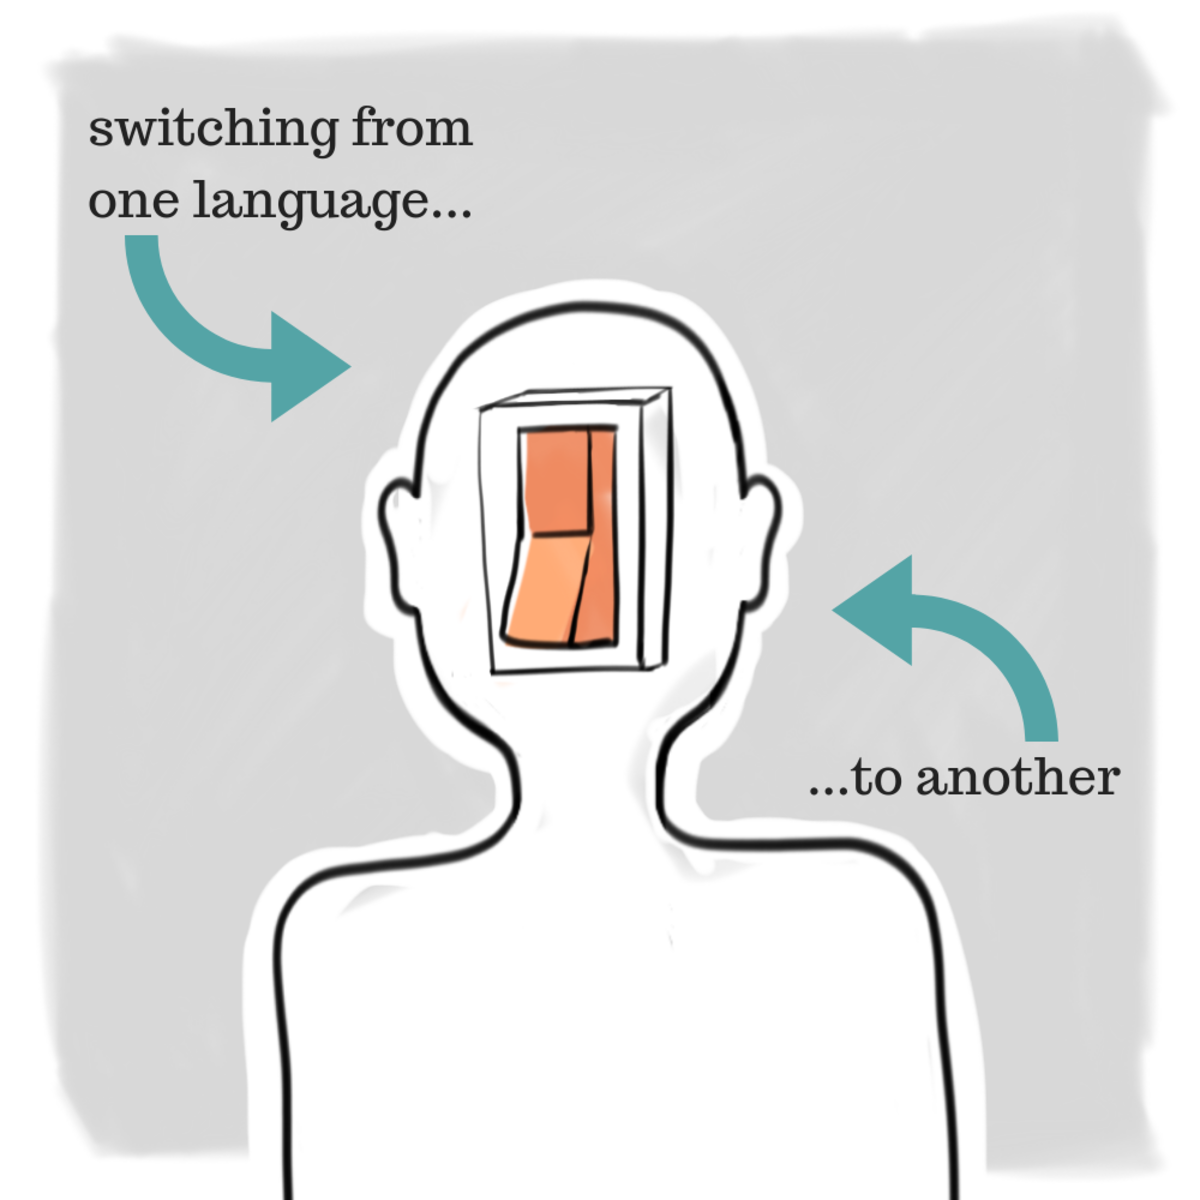 Code switching is when you combine two (or more) languages in one communication.